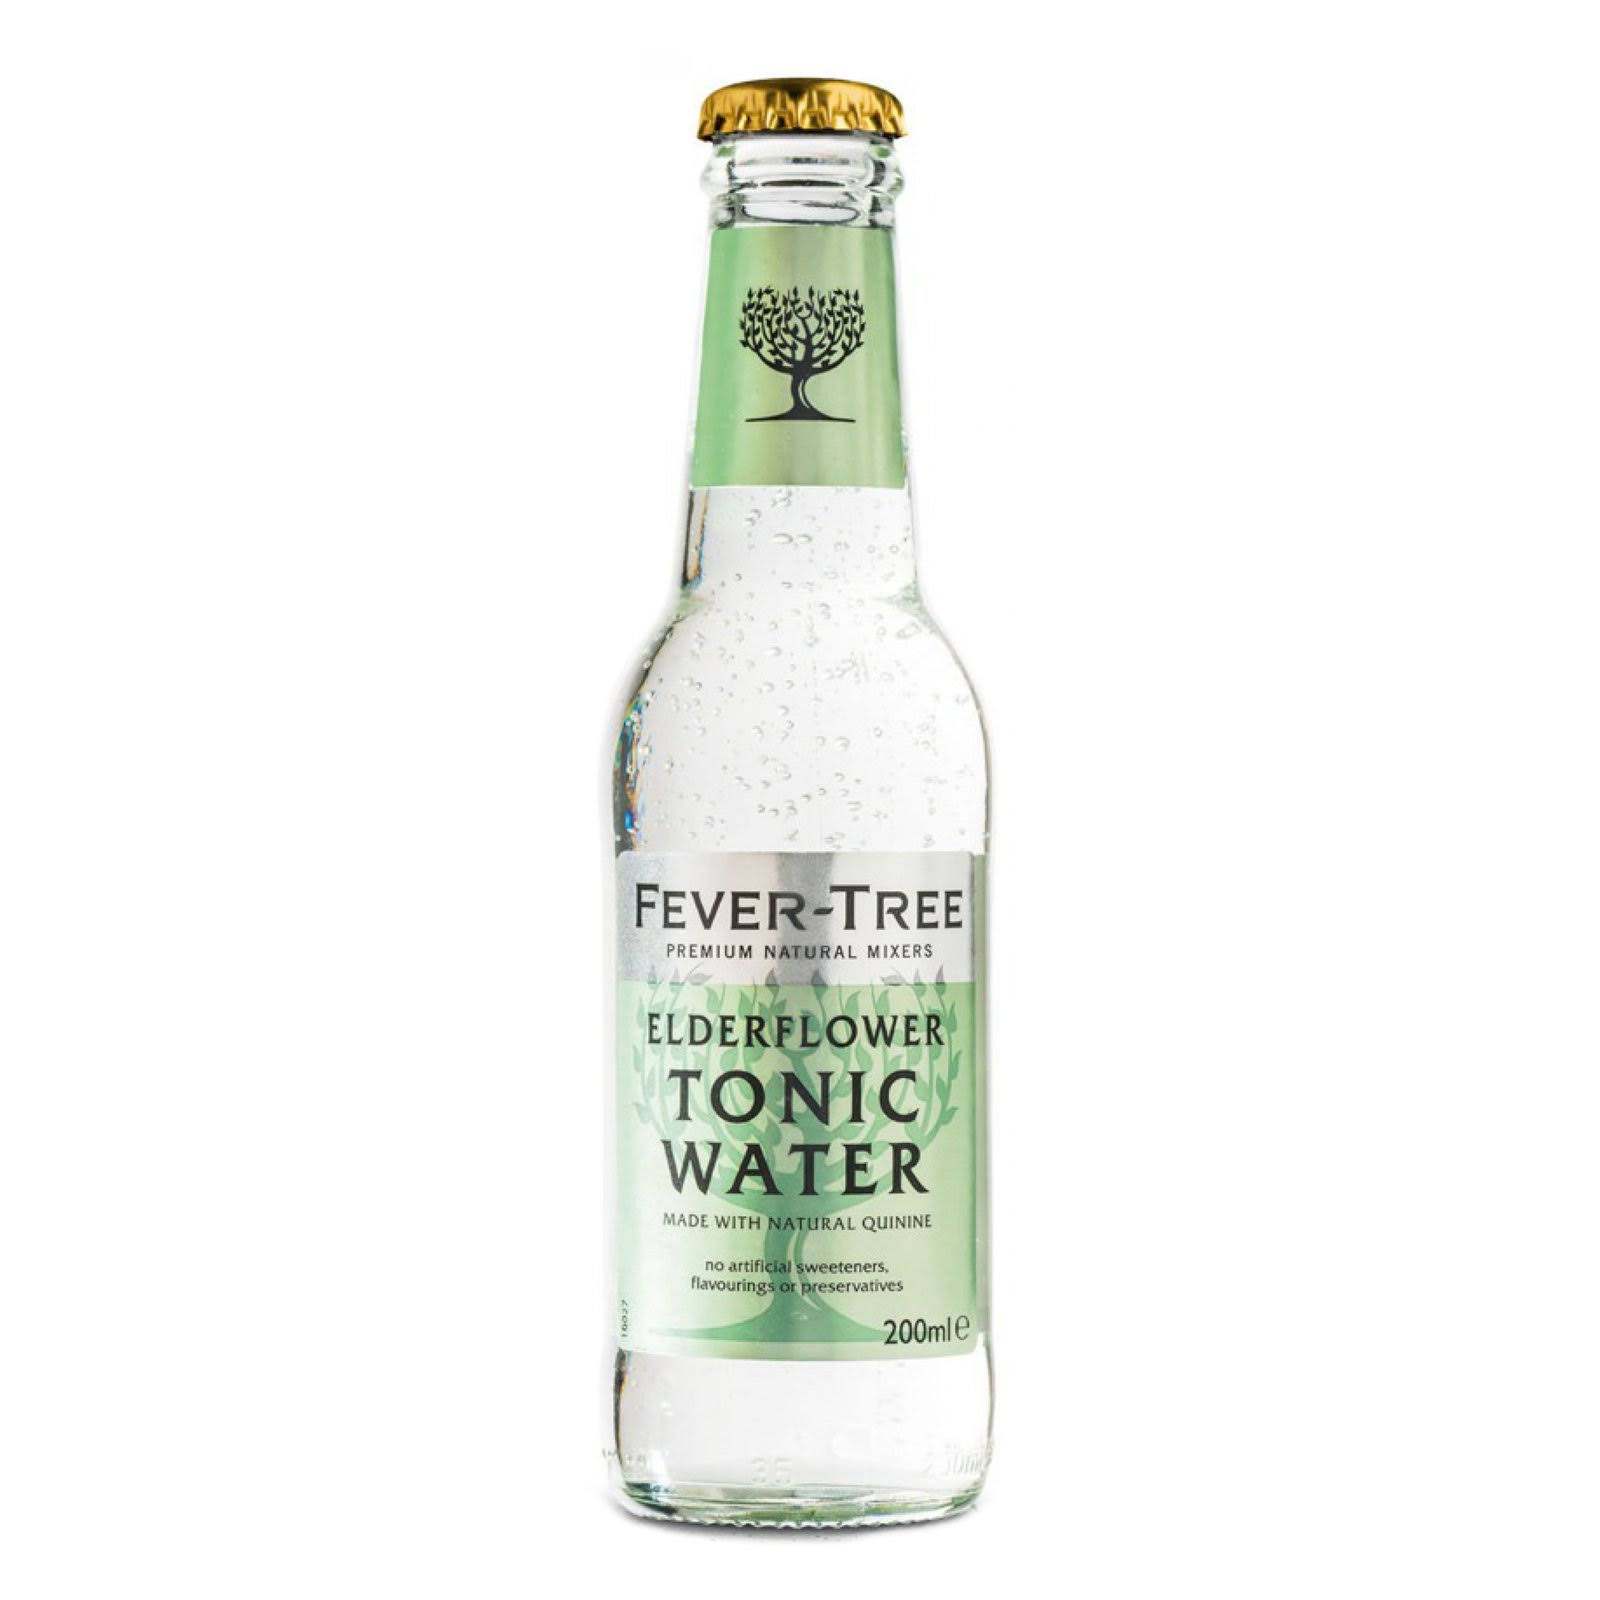 Fever Tree - Elderflower Tonic Water 200ml